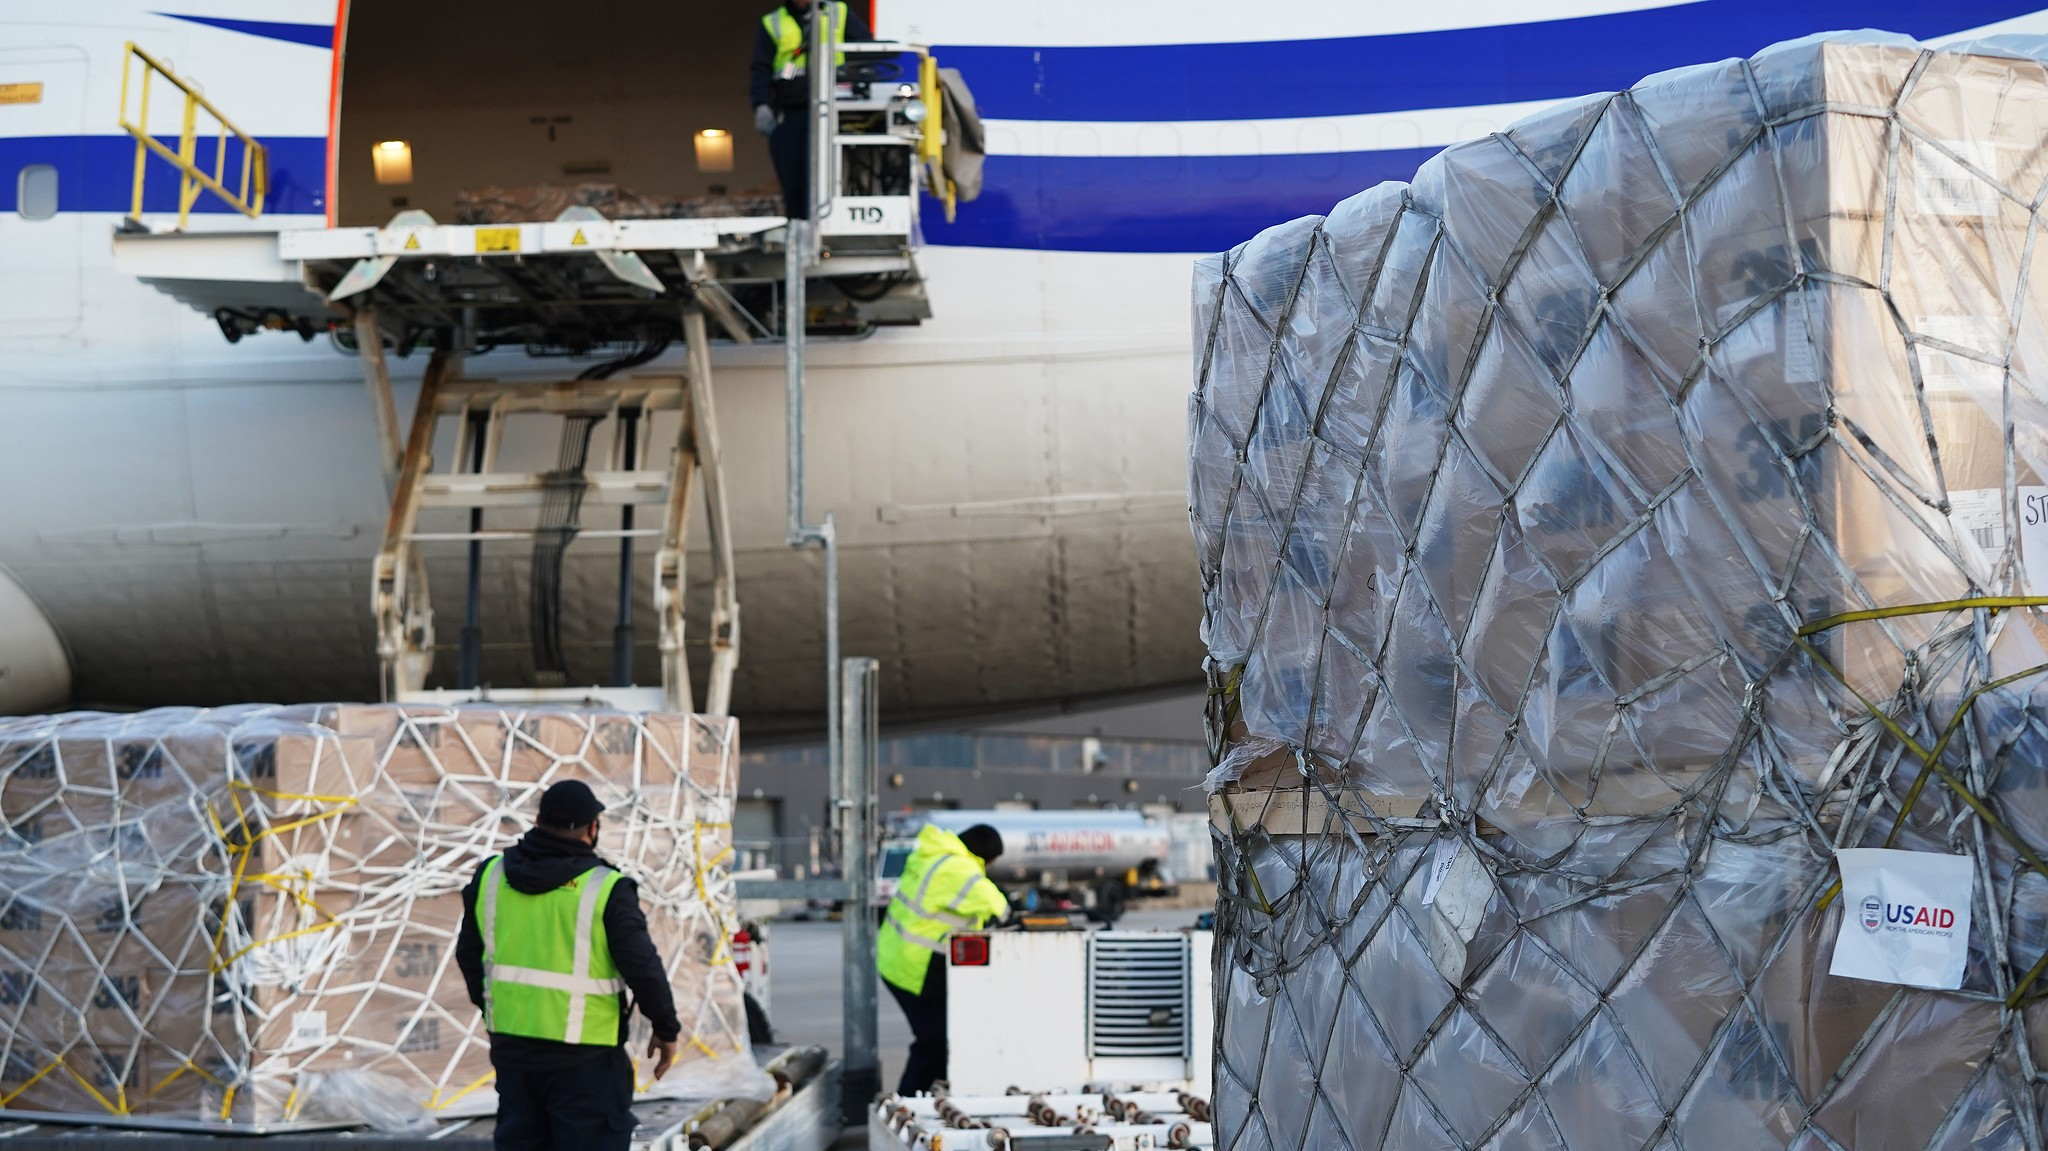 Trusted partners key to supply chain for humanitarian aid